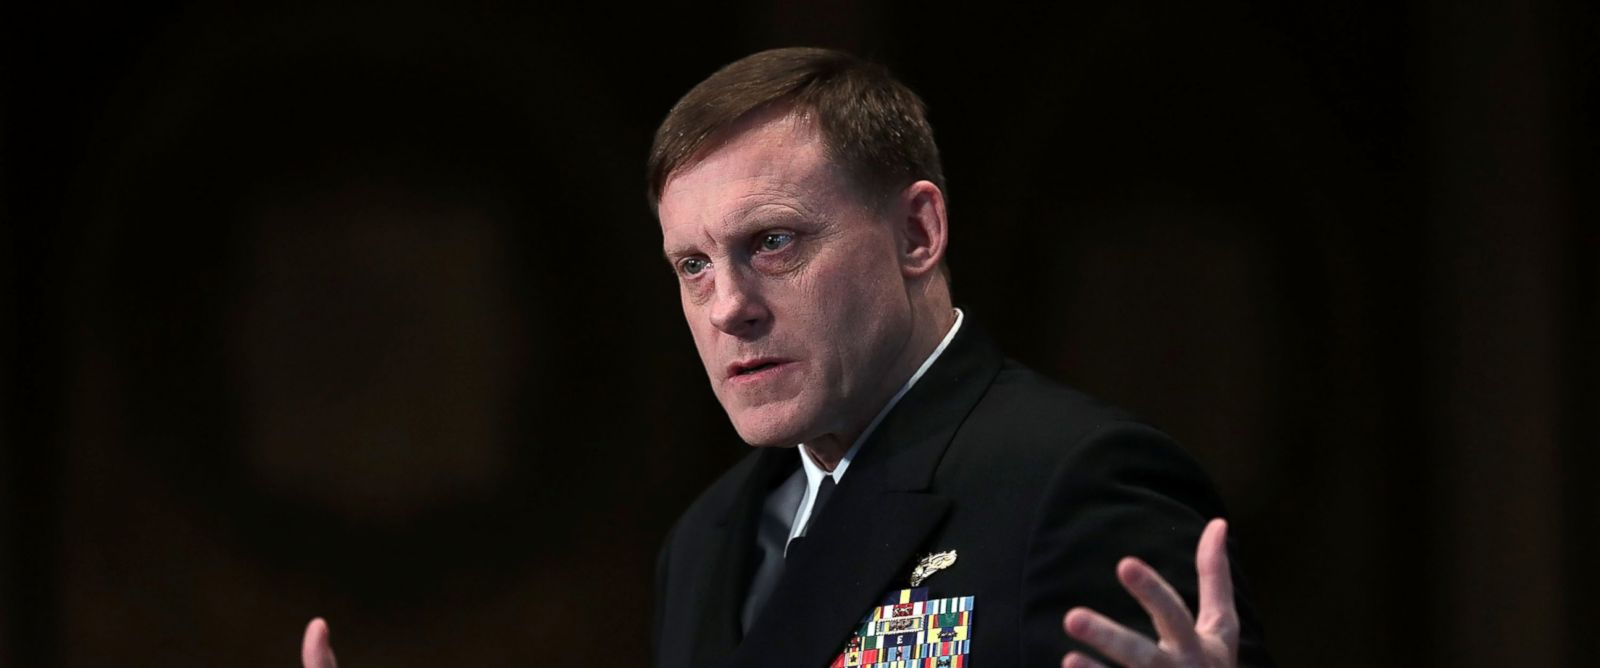 PHOTO: National Security Agency Director Adm. Michael Rogers, commander of U.S. Cyber Command, speaks on cyber security at Georgetown University on April 26, 2016 in Washington, DC.